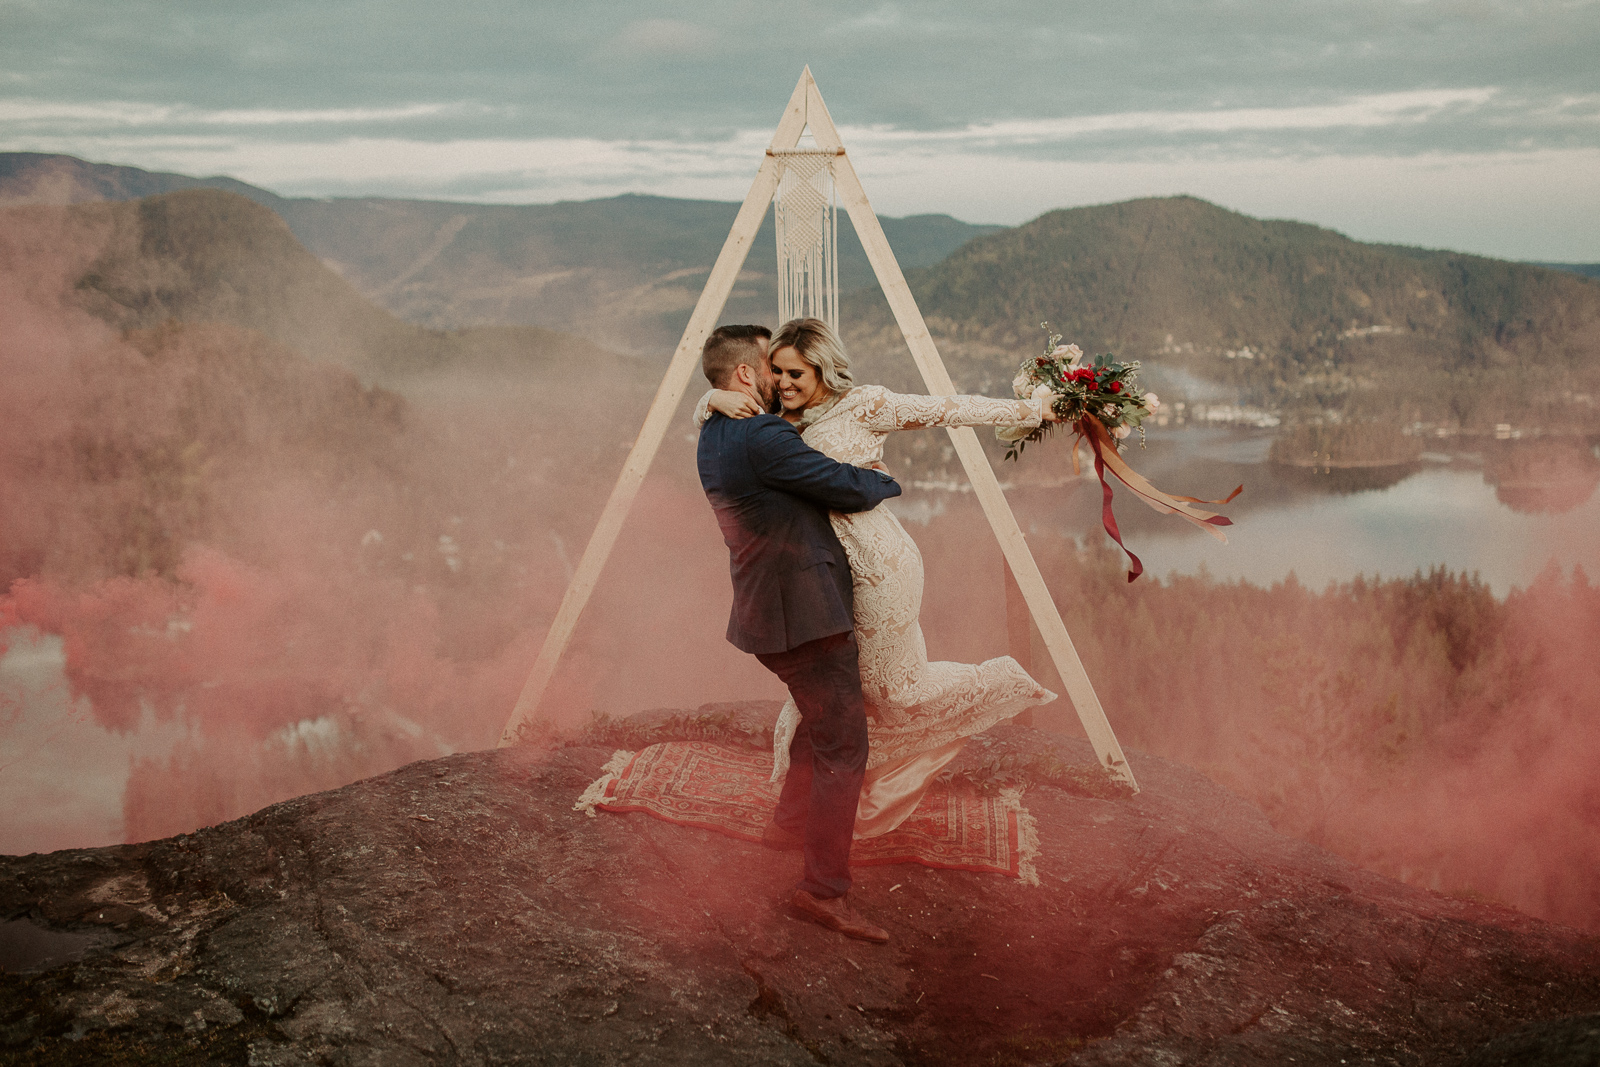 Luke Lambertson Photo_BritishColumbia_Canada_AdventurousCouple_Elopement_IMG-8748.jpg